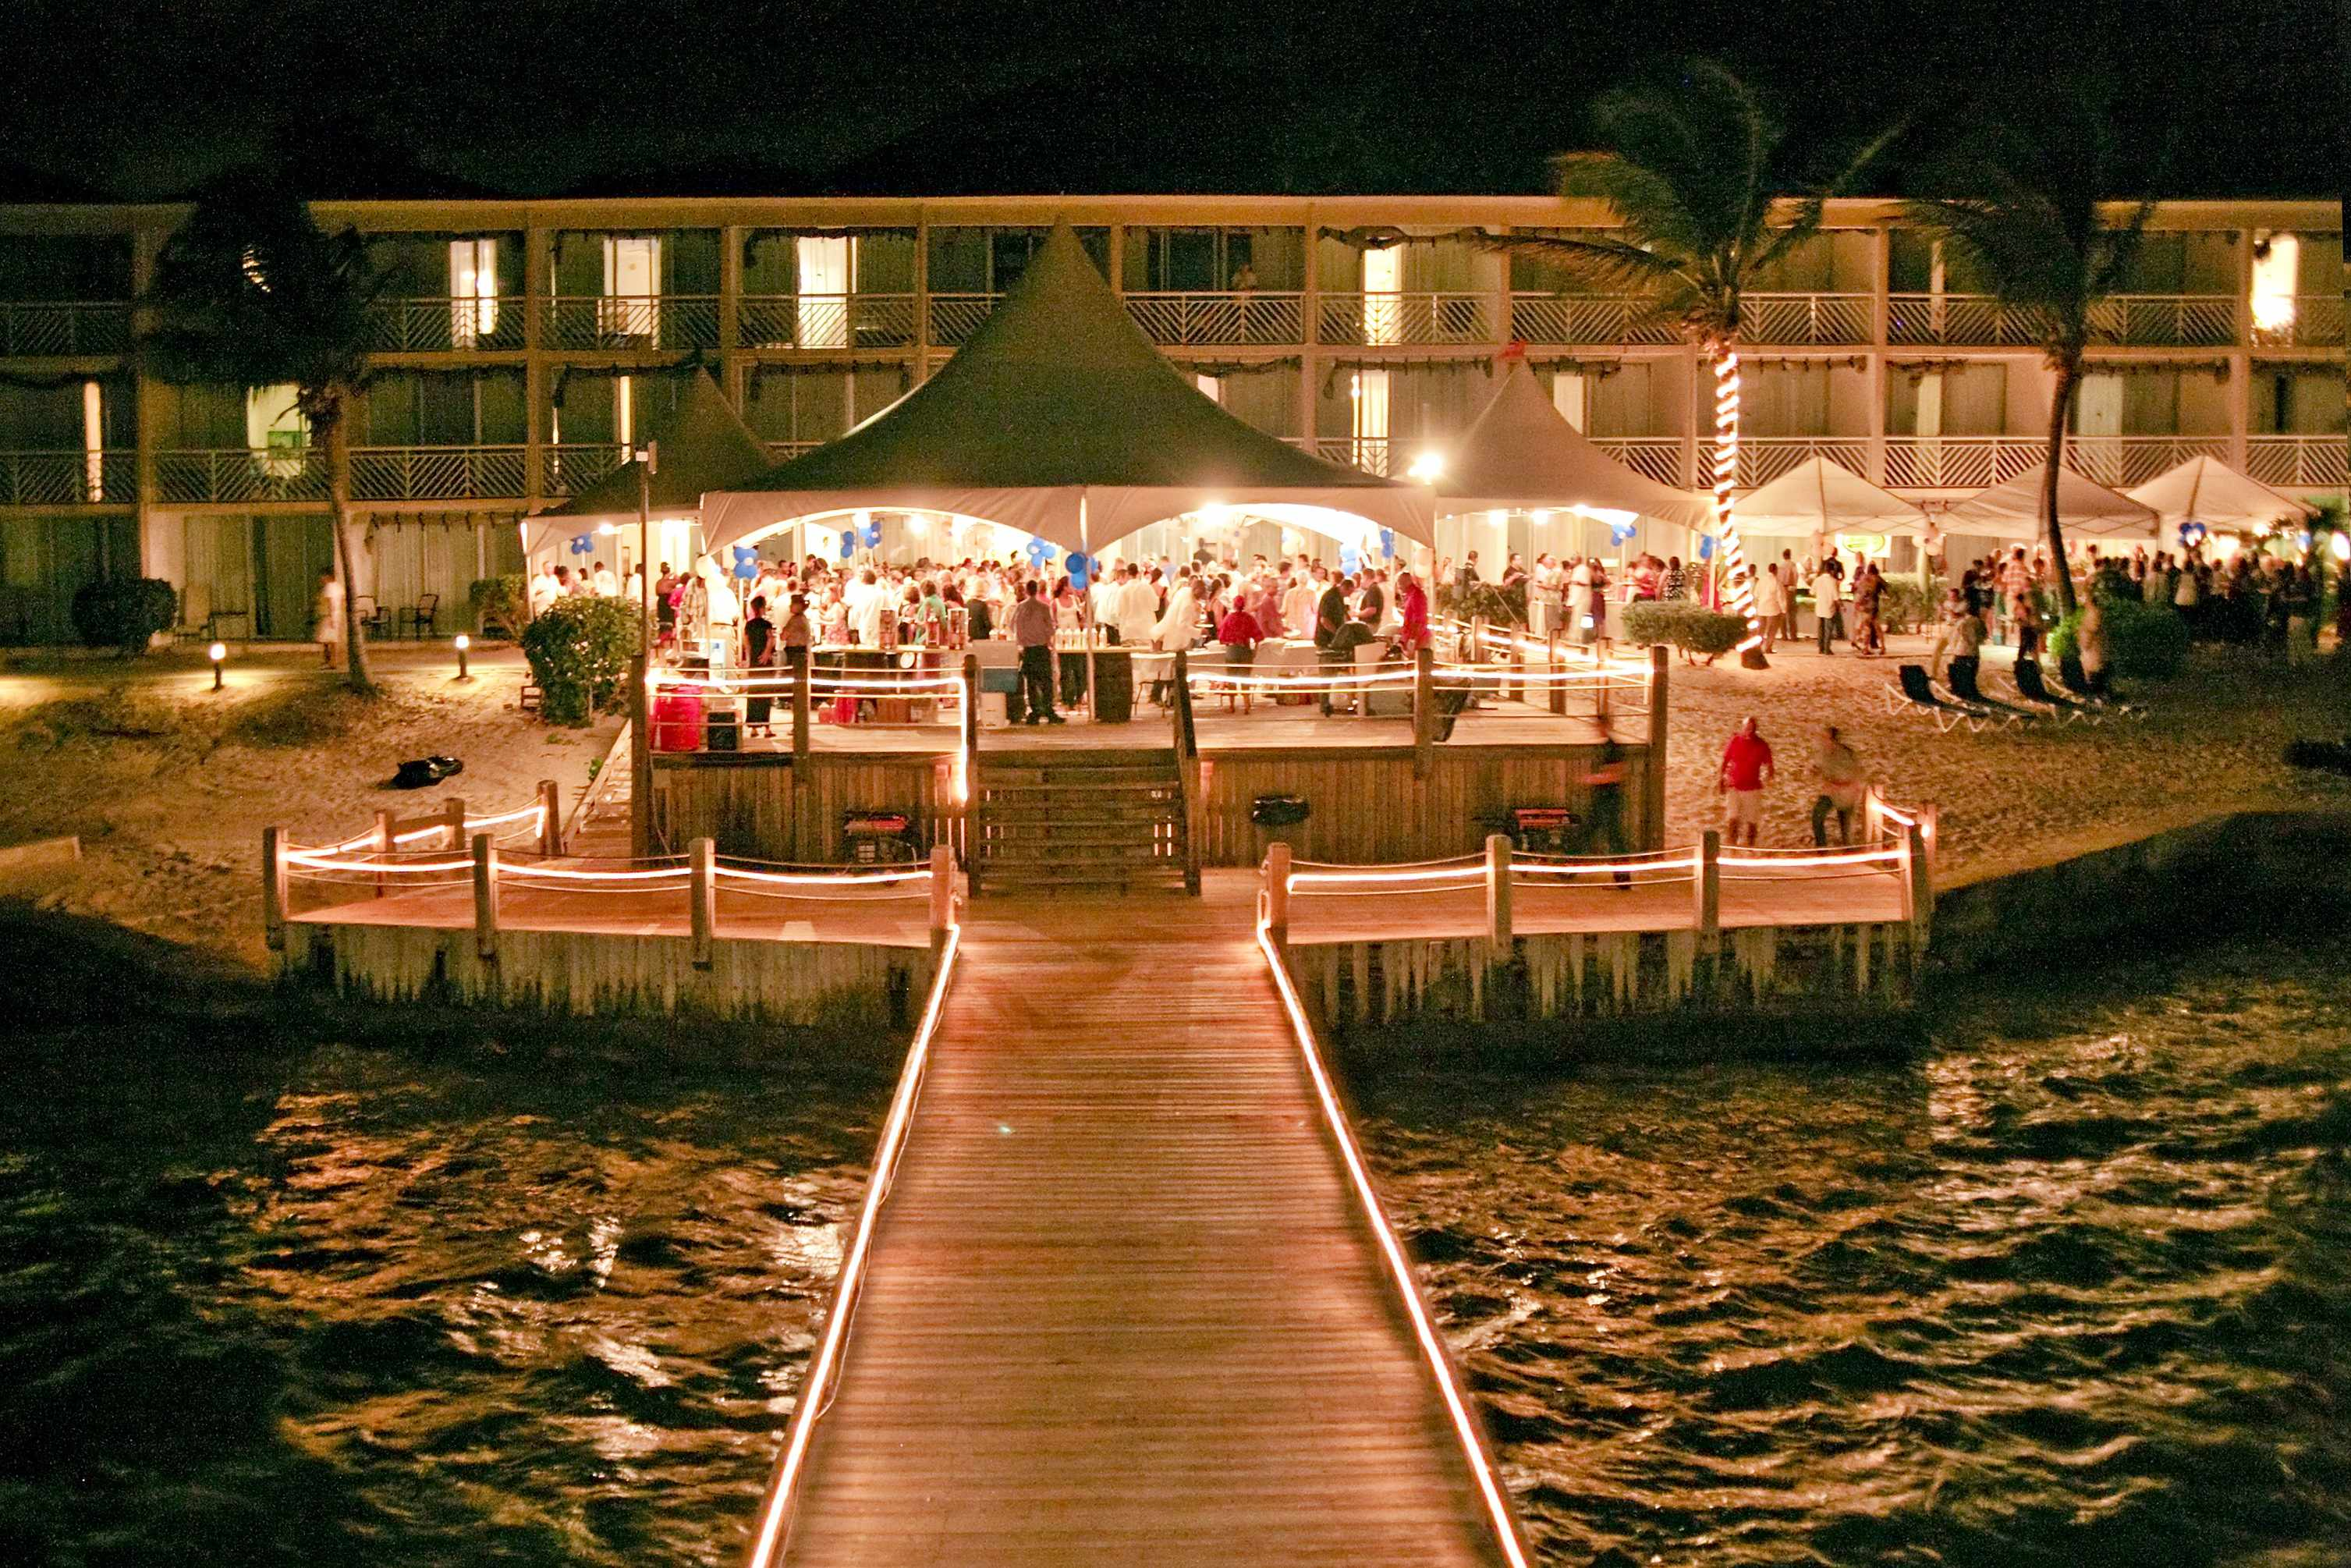 St. Croix Food and Wine Experience